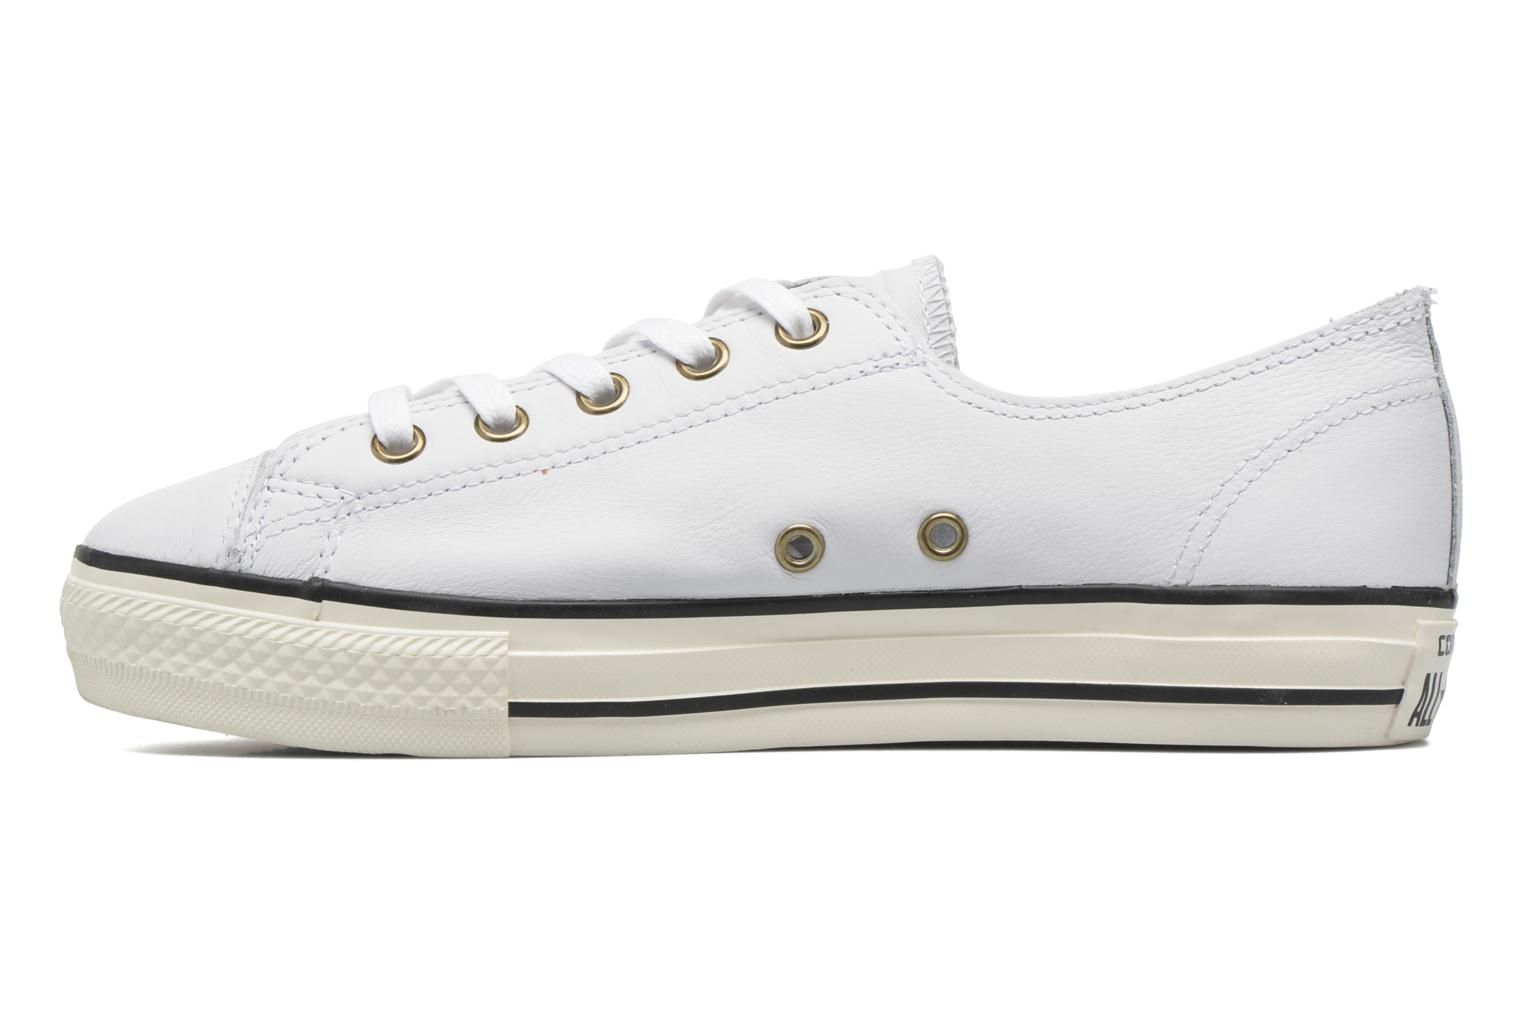 Chuck Taylor All Star High Line Ox White/Egret/White